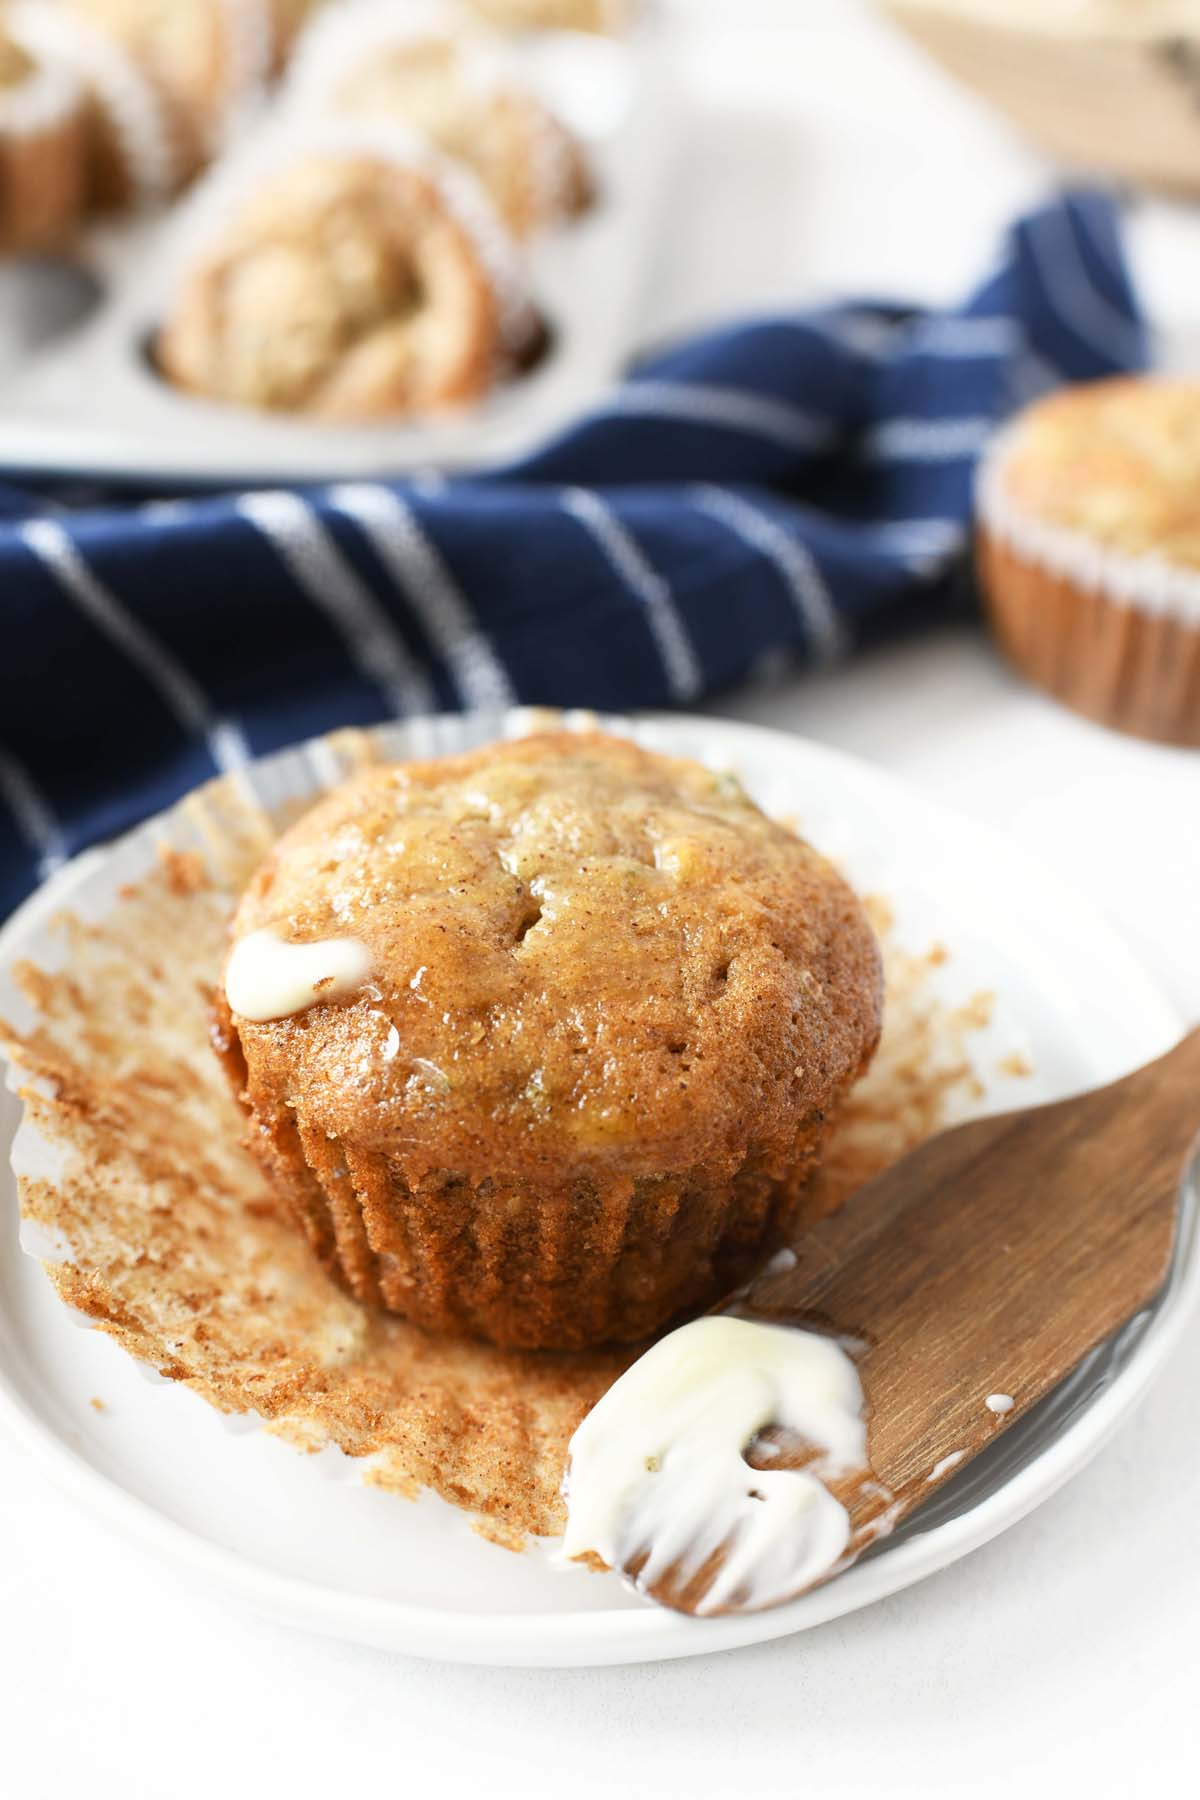 Zucchini banana muffin with melted butter on it.